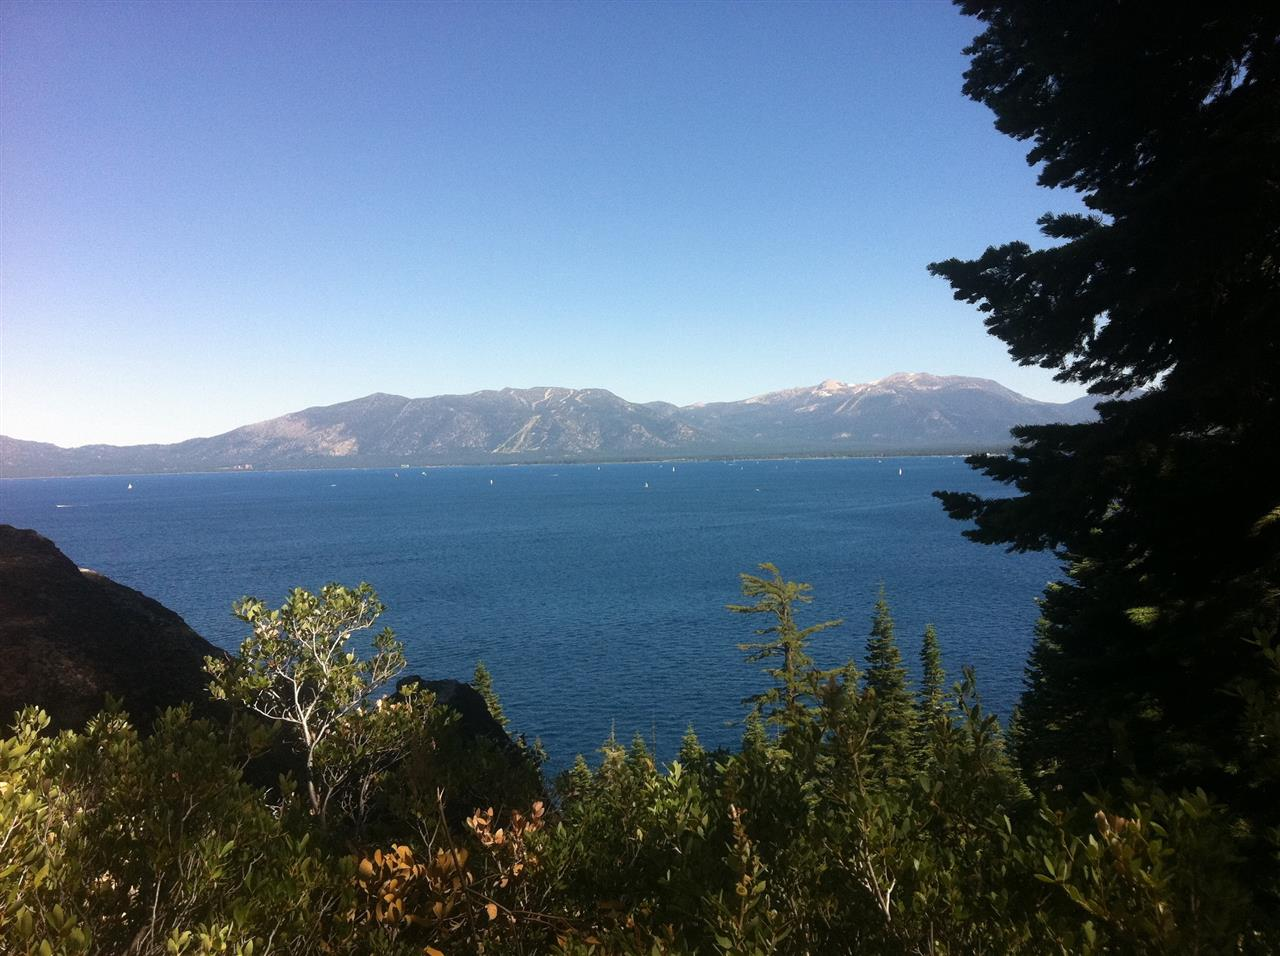 #Lake Tahoe #Rubicon Trail Hike